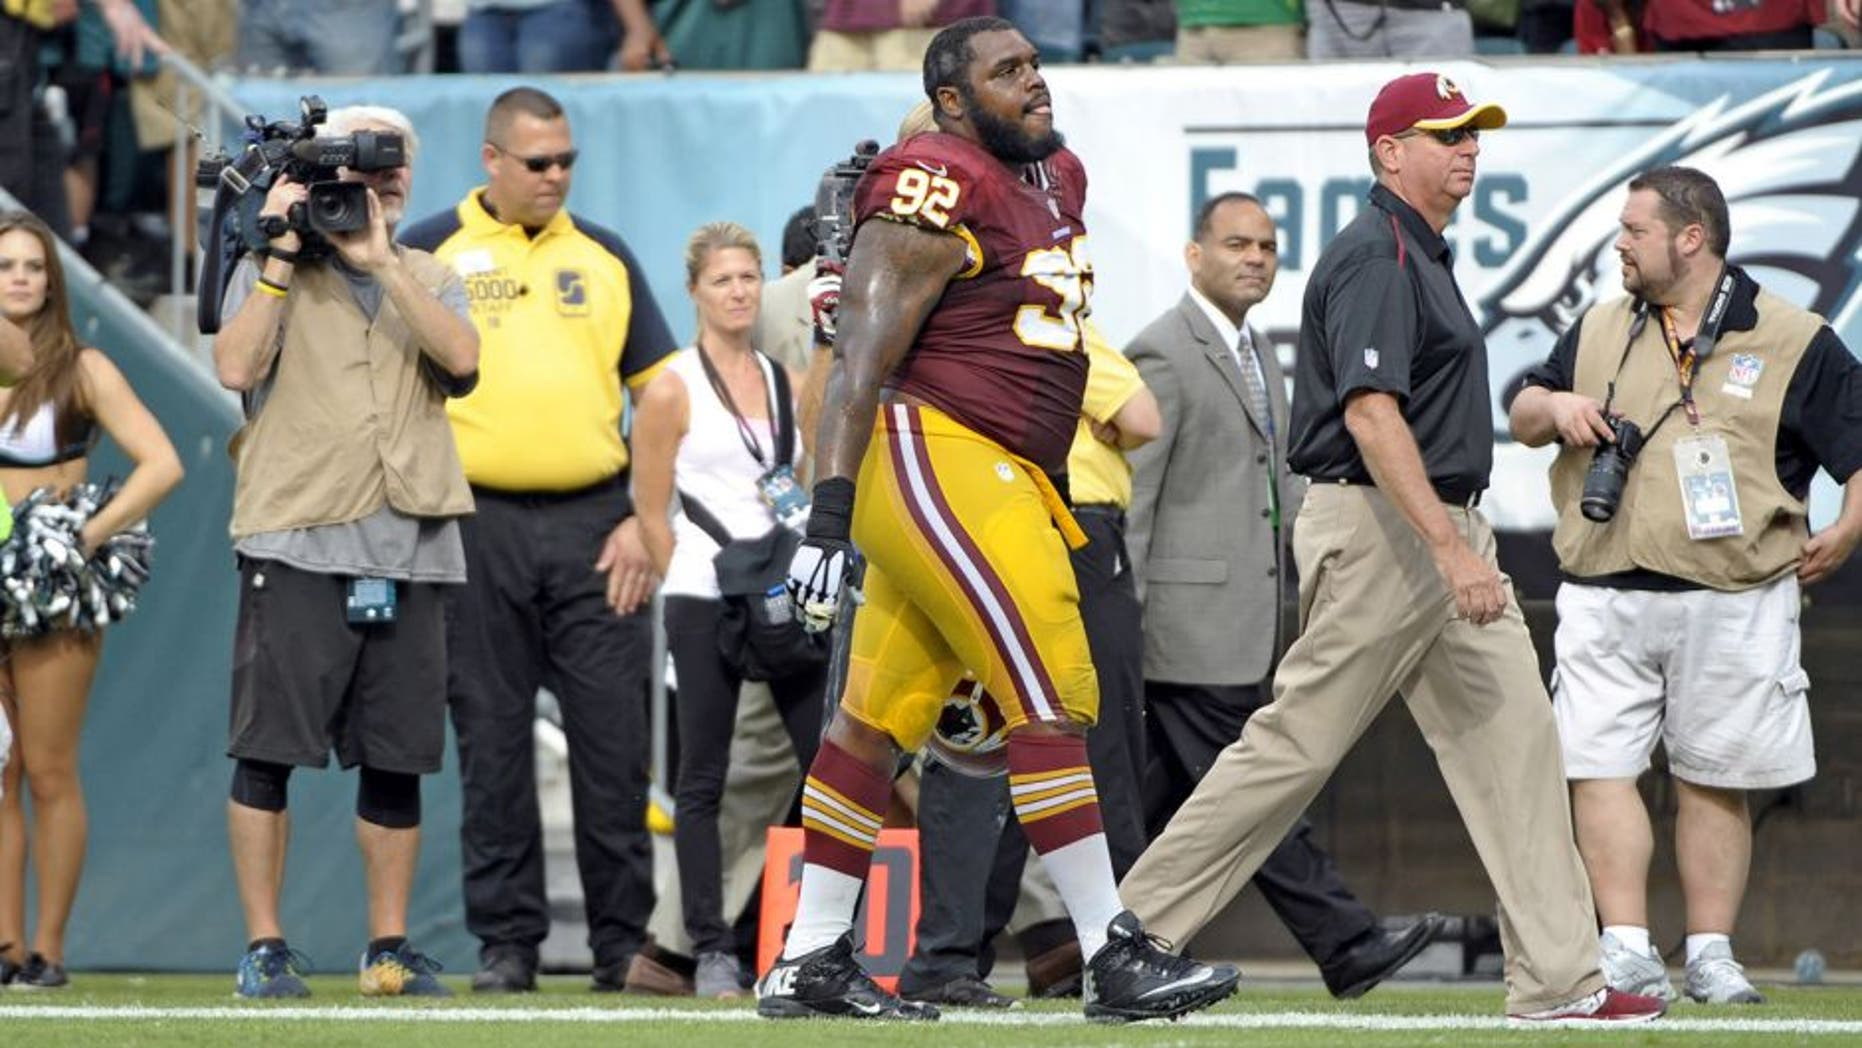 Sep 21, 2014; Philadelphia, PA, USA; Washington Redskins defensive end Chris Baker (92) walks off the field after being ejected during the fourth quarter against the Philadelphia Eagles at Lincoln Financial Field. The Eagles defeated the Redskins, 37-34. Mandatory Credit: Eric Hartline-USA TODAY Sports